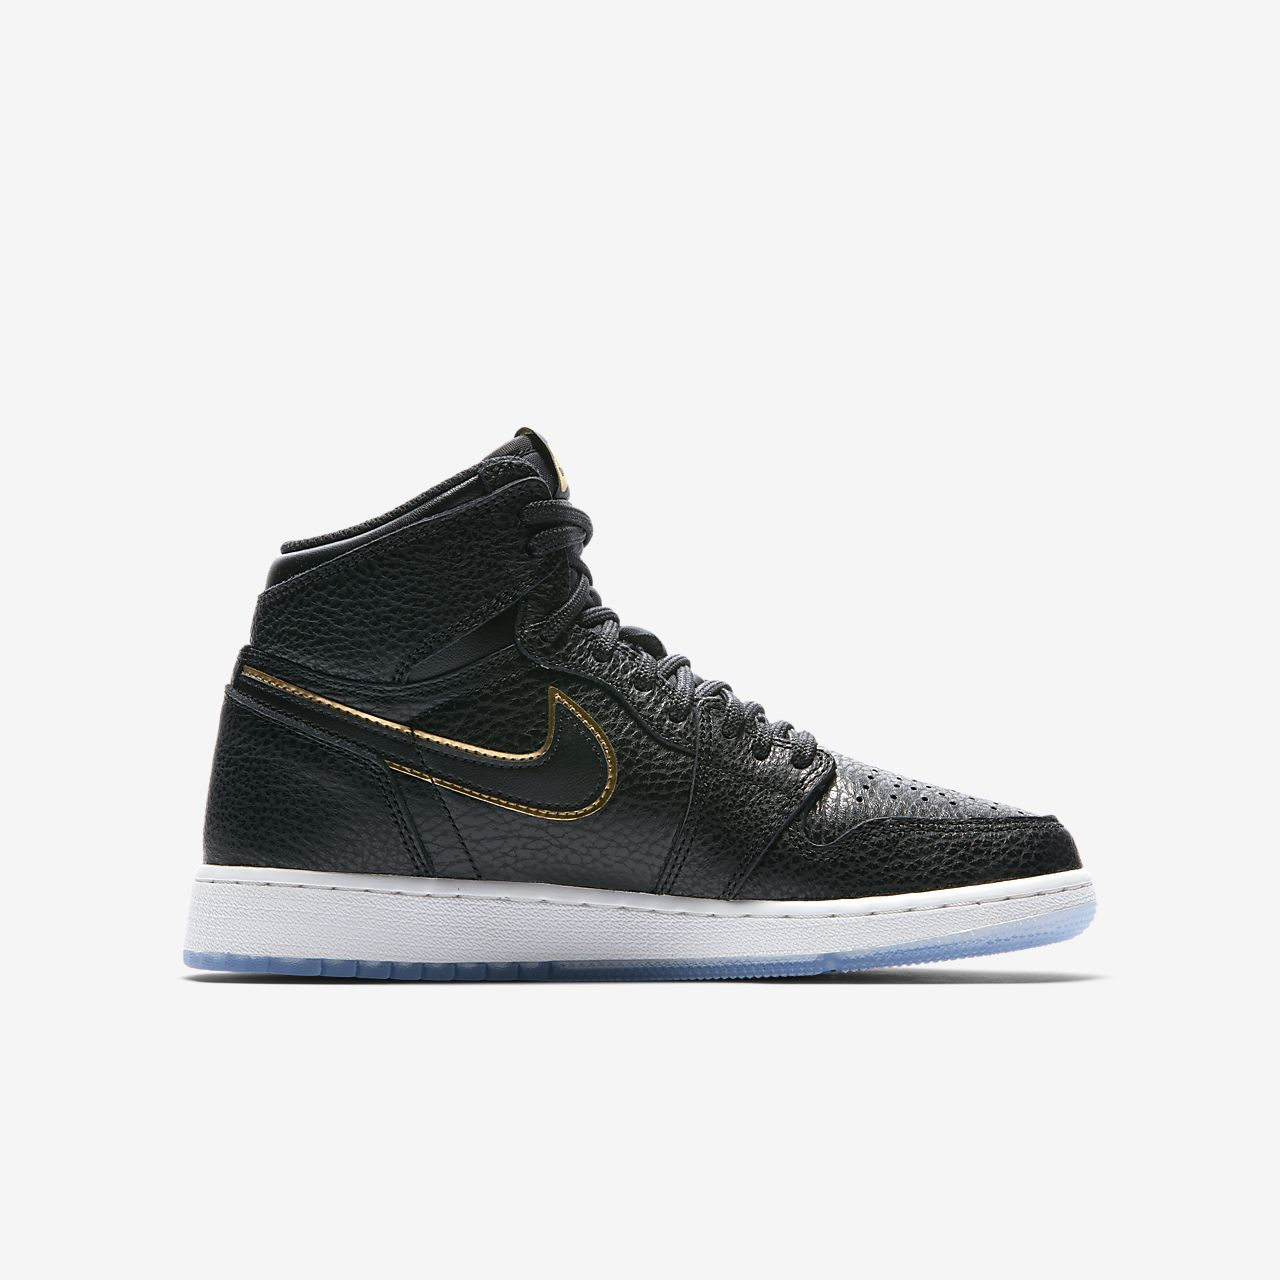 air jordan 1 shoe nz